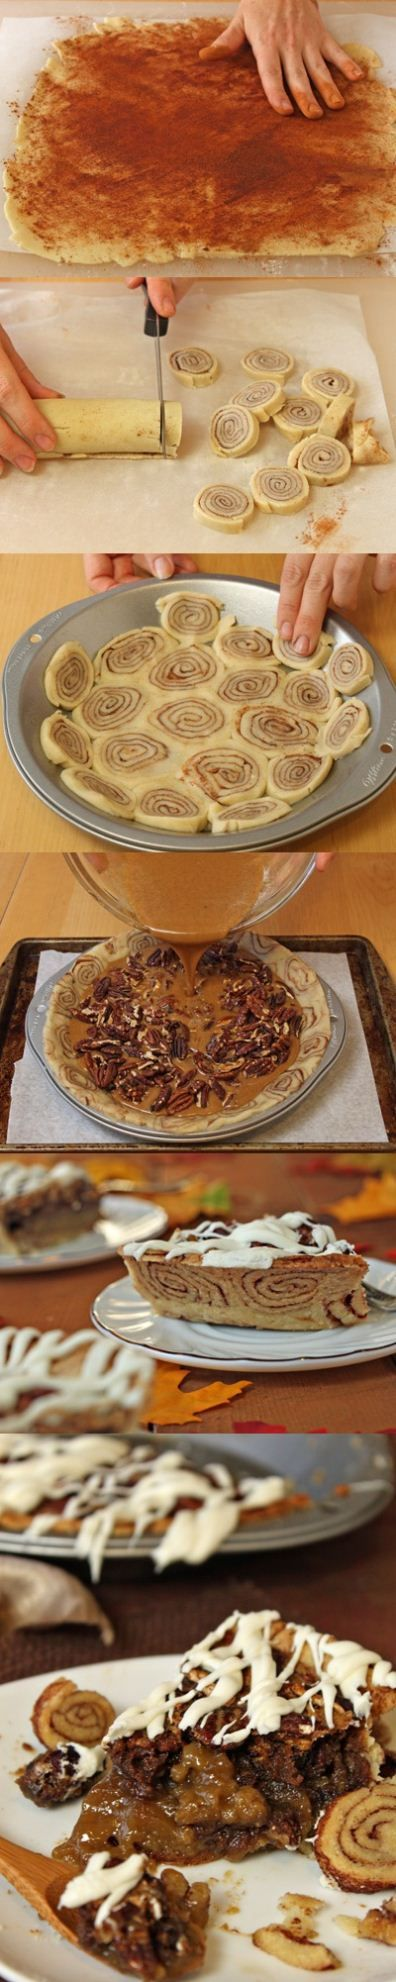 Cinnamon roll crust for holiday pies, or even a breakfast casserole/pie. Someone even suggested using muffin tin to creat small crusts to hold ice cream.